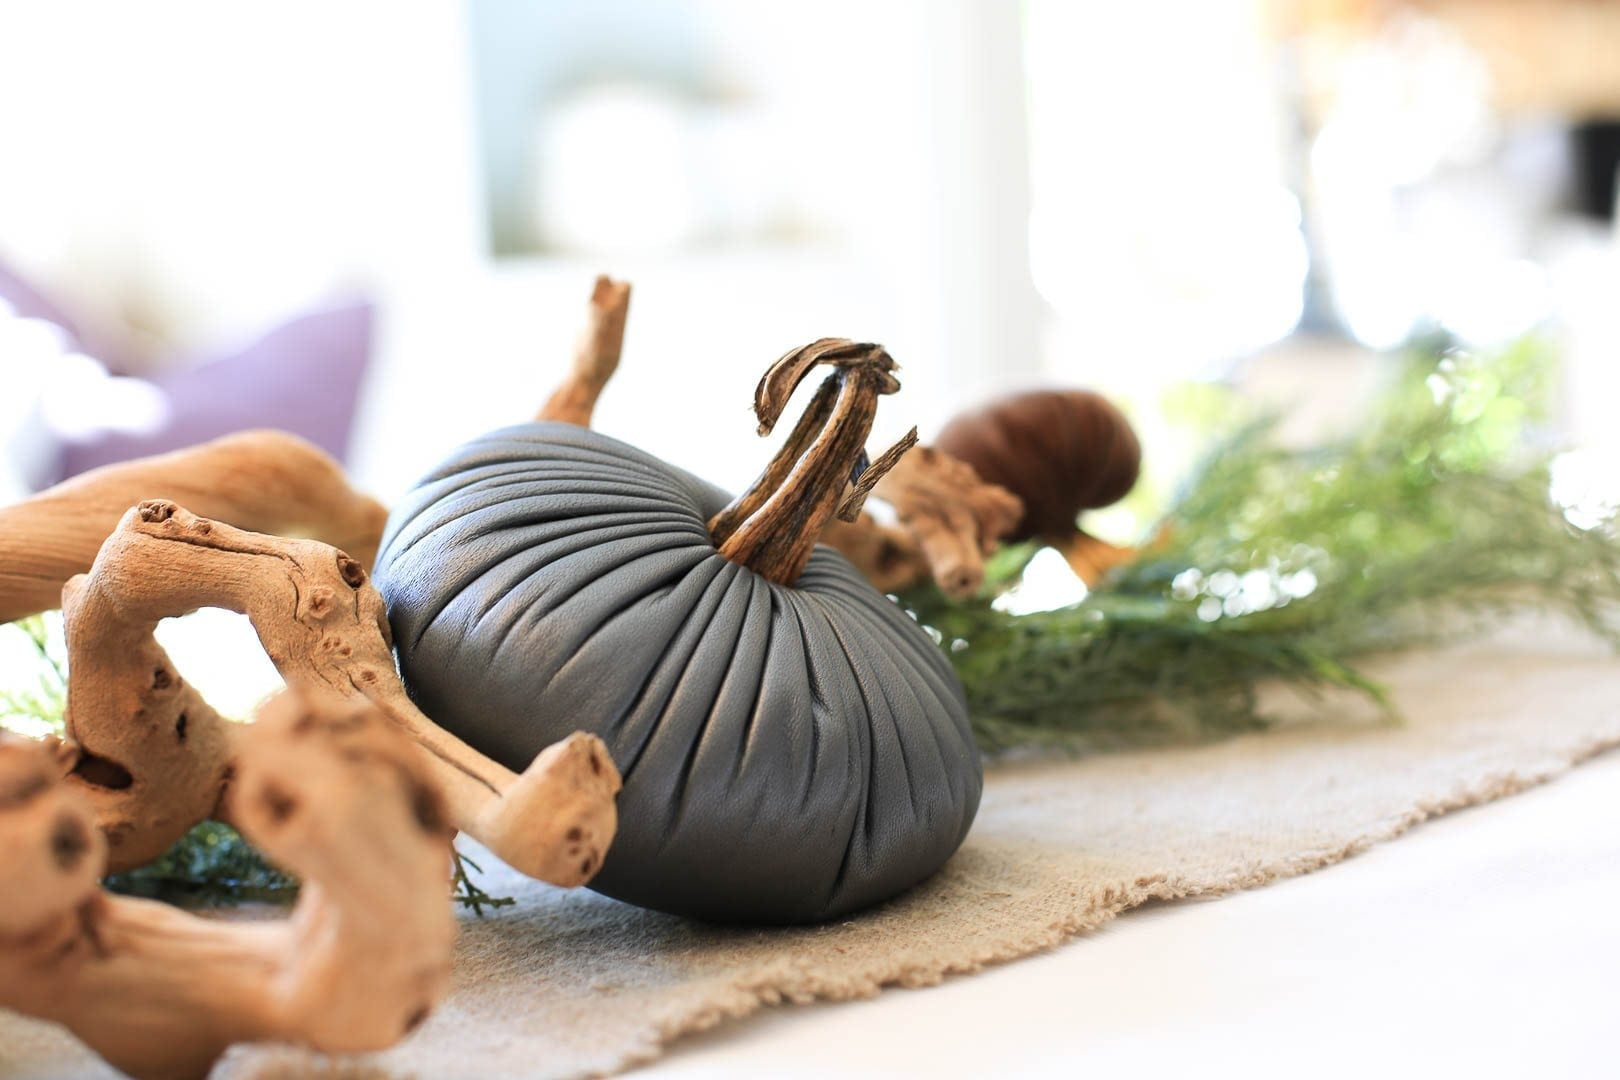 Blue pumpkin mixed with grapewood vine. Fall decorations for home